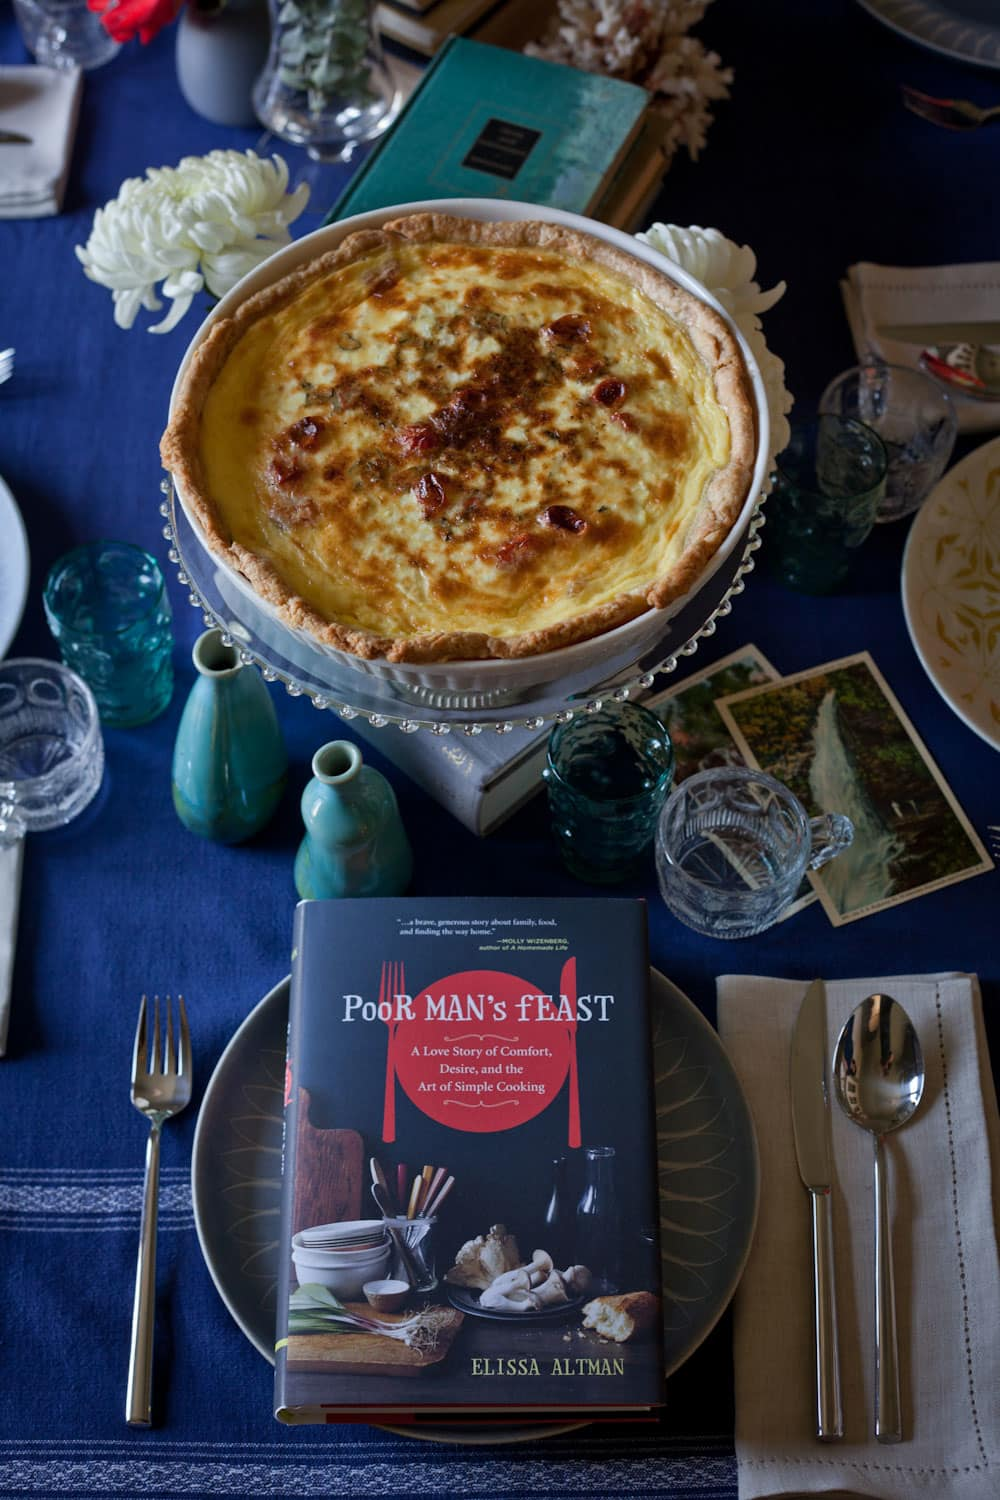 Recipe: Roasted Tomato and Goat Cheese Quiche